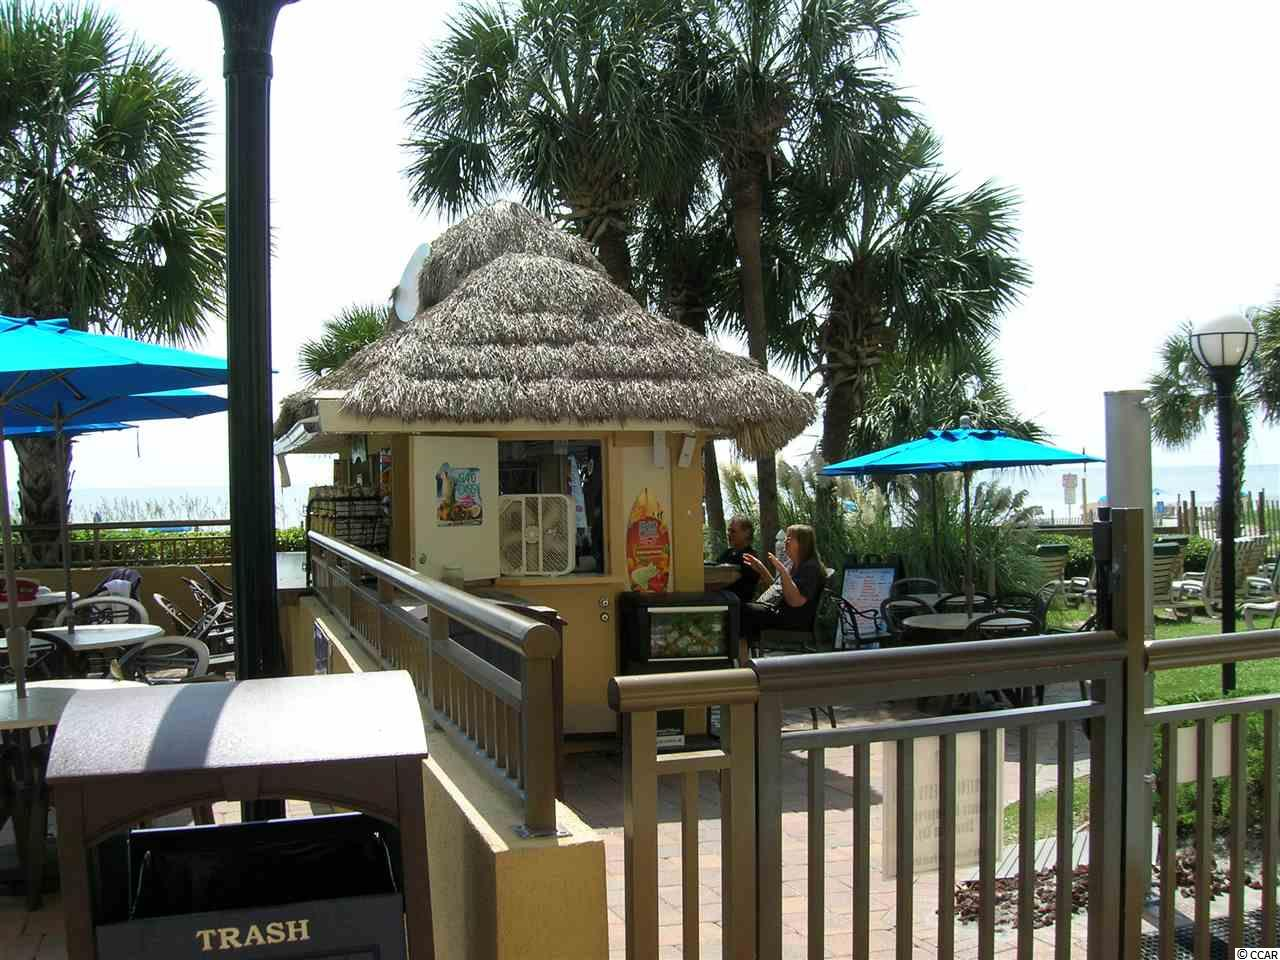 Have you seen this  HOLIDAY INN PAVILION property for sale in Myrtle Beach